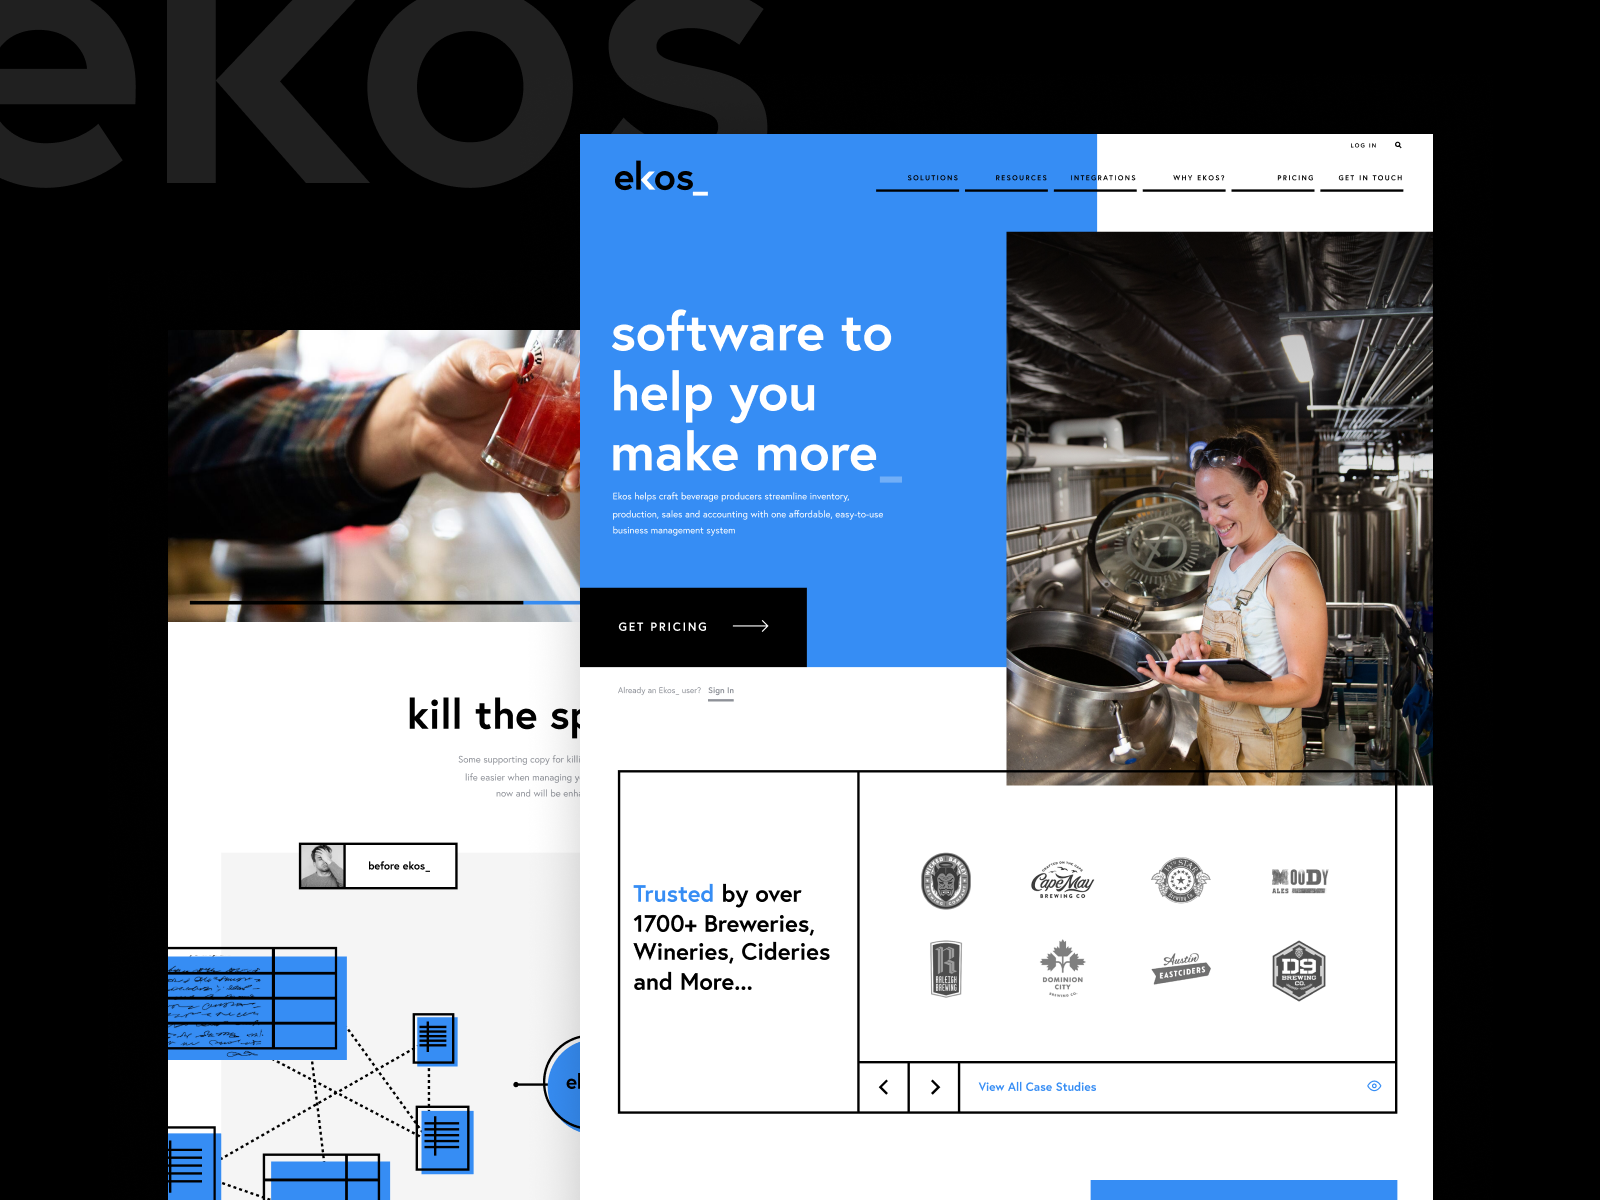 Ekos Maker Software Interface Design By Ben Visser For Social Design House On Dribbble